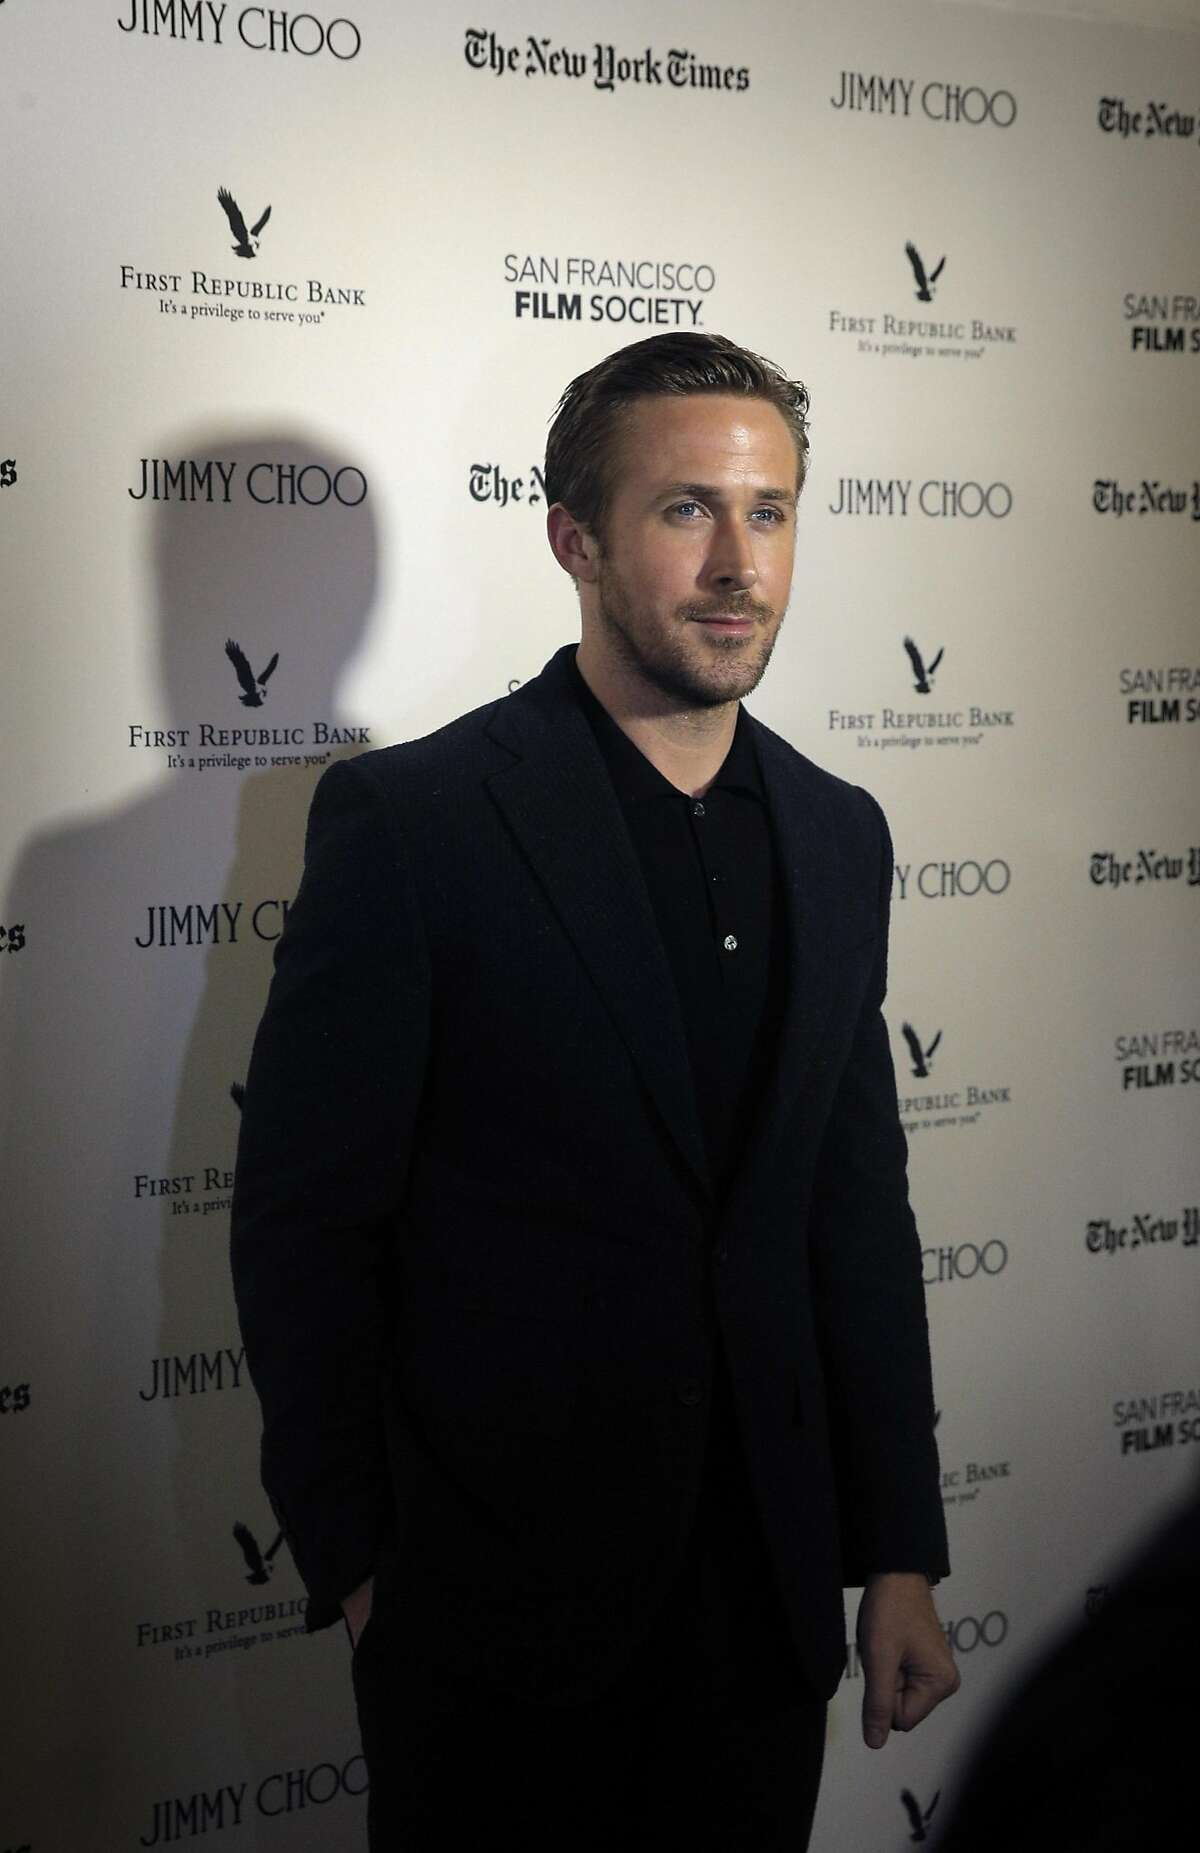 Actor Ryan Gosling walks the red carpet before a special screening of La La Land at the Castro Theater in San Francisco, Calif., on Thursday, December 8, 2016. The SF Film Society honored LaLa Land with a special screening at the Castro with director Damien Chazelle and stars Ryan Gosling and Emma Stone.